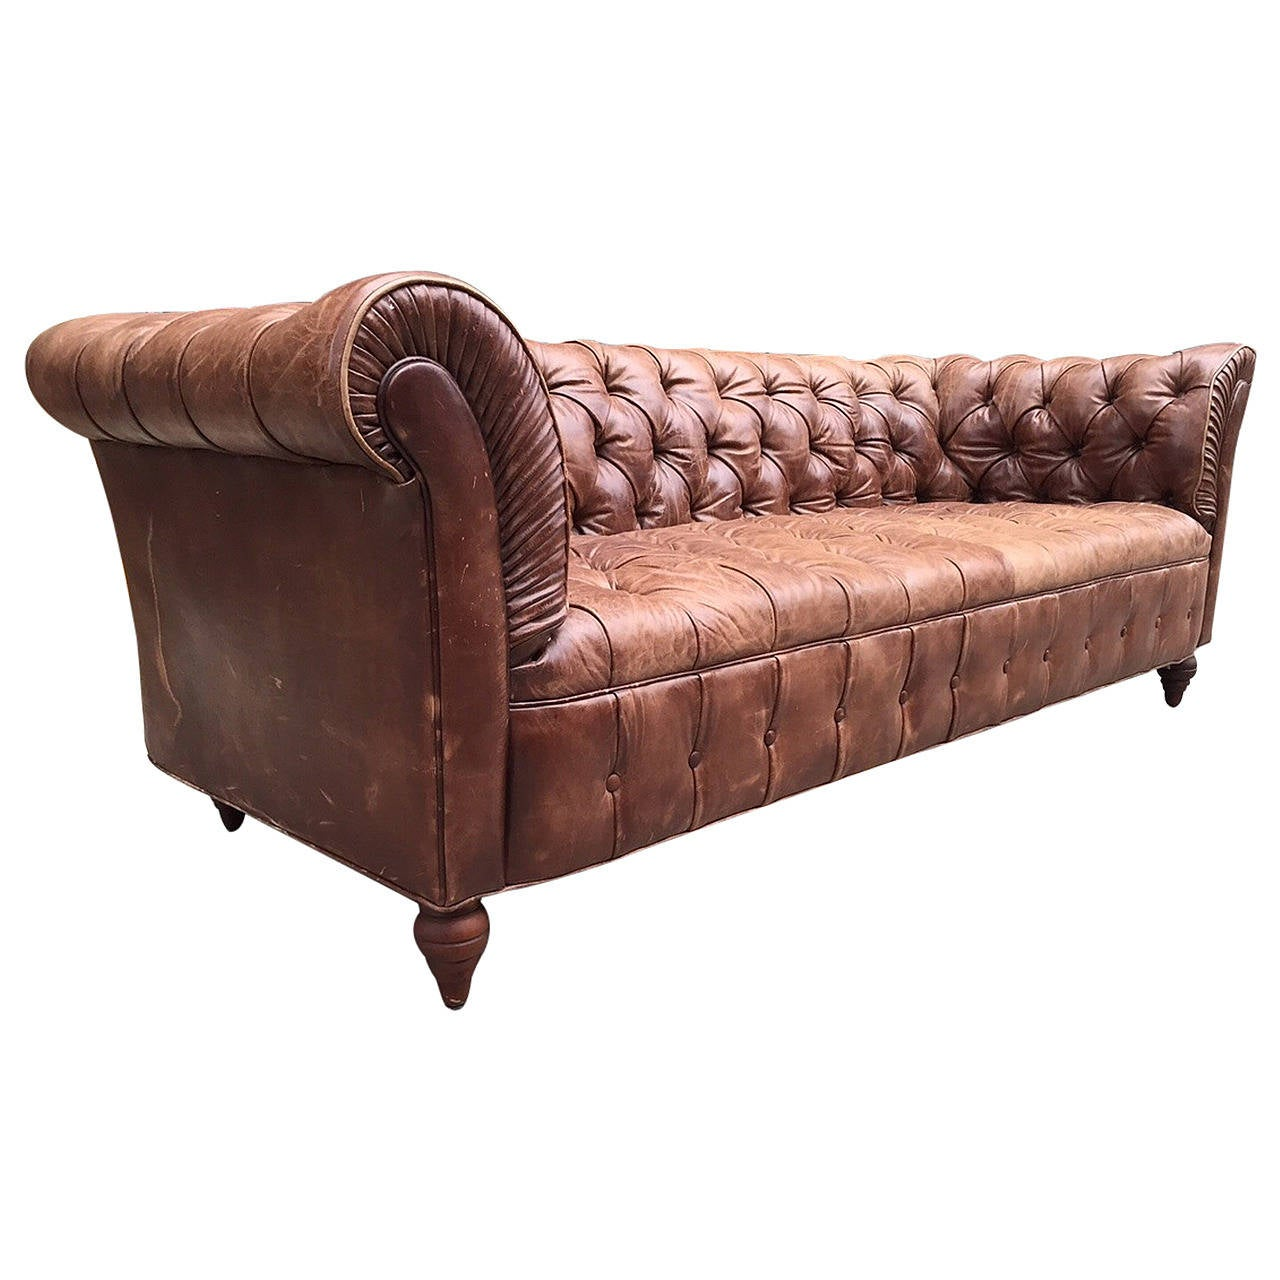 Vintage Black Leather Chesterfield Sofa: Antique Leather Chesterfield Sofa Chesterfield Sofa In Tan